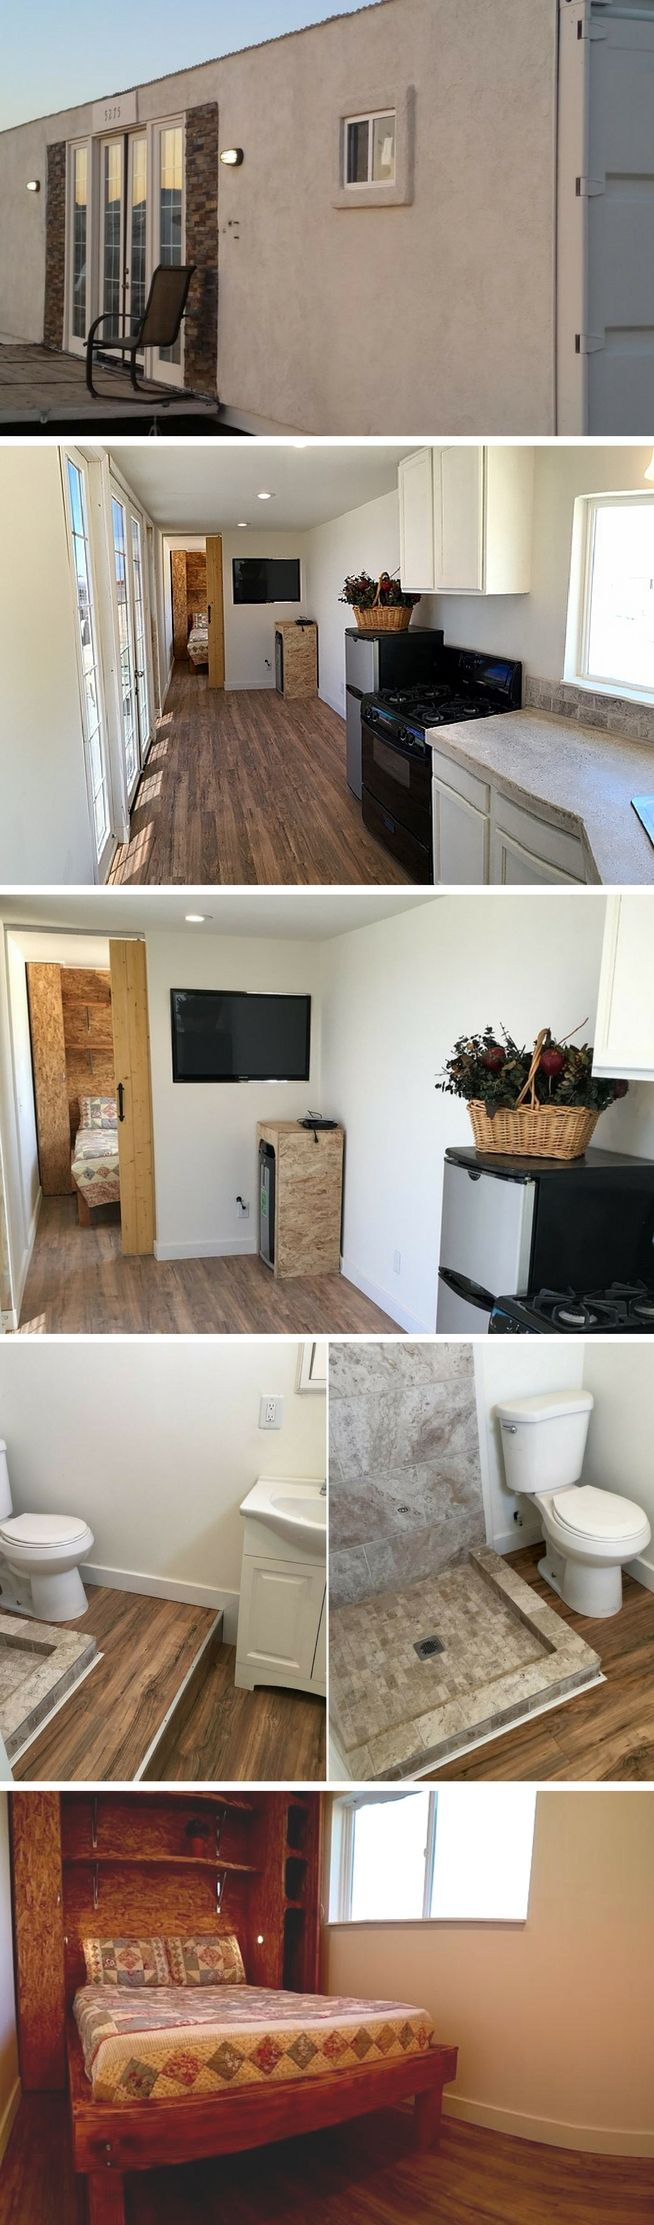 best 25 wohncontainer ideas on pinterest verschiffbare a 320 sq ft shipping container home made by live simply homes currently available for sale in phoenix arizona